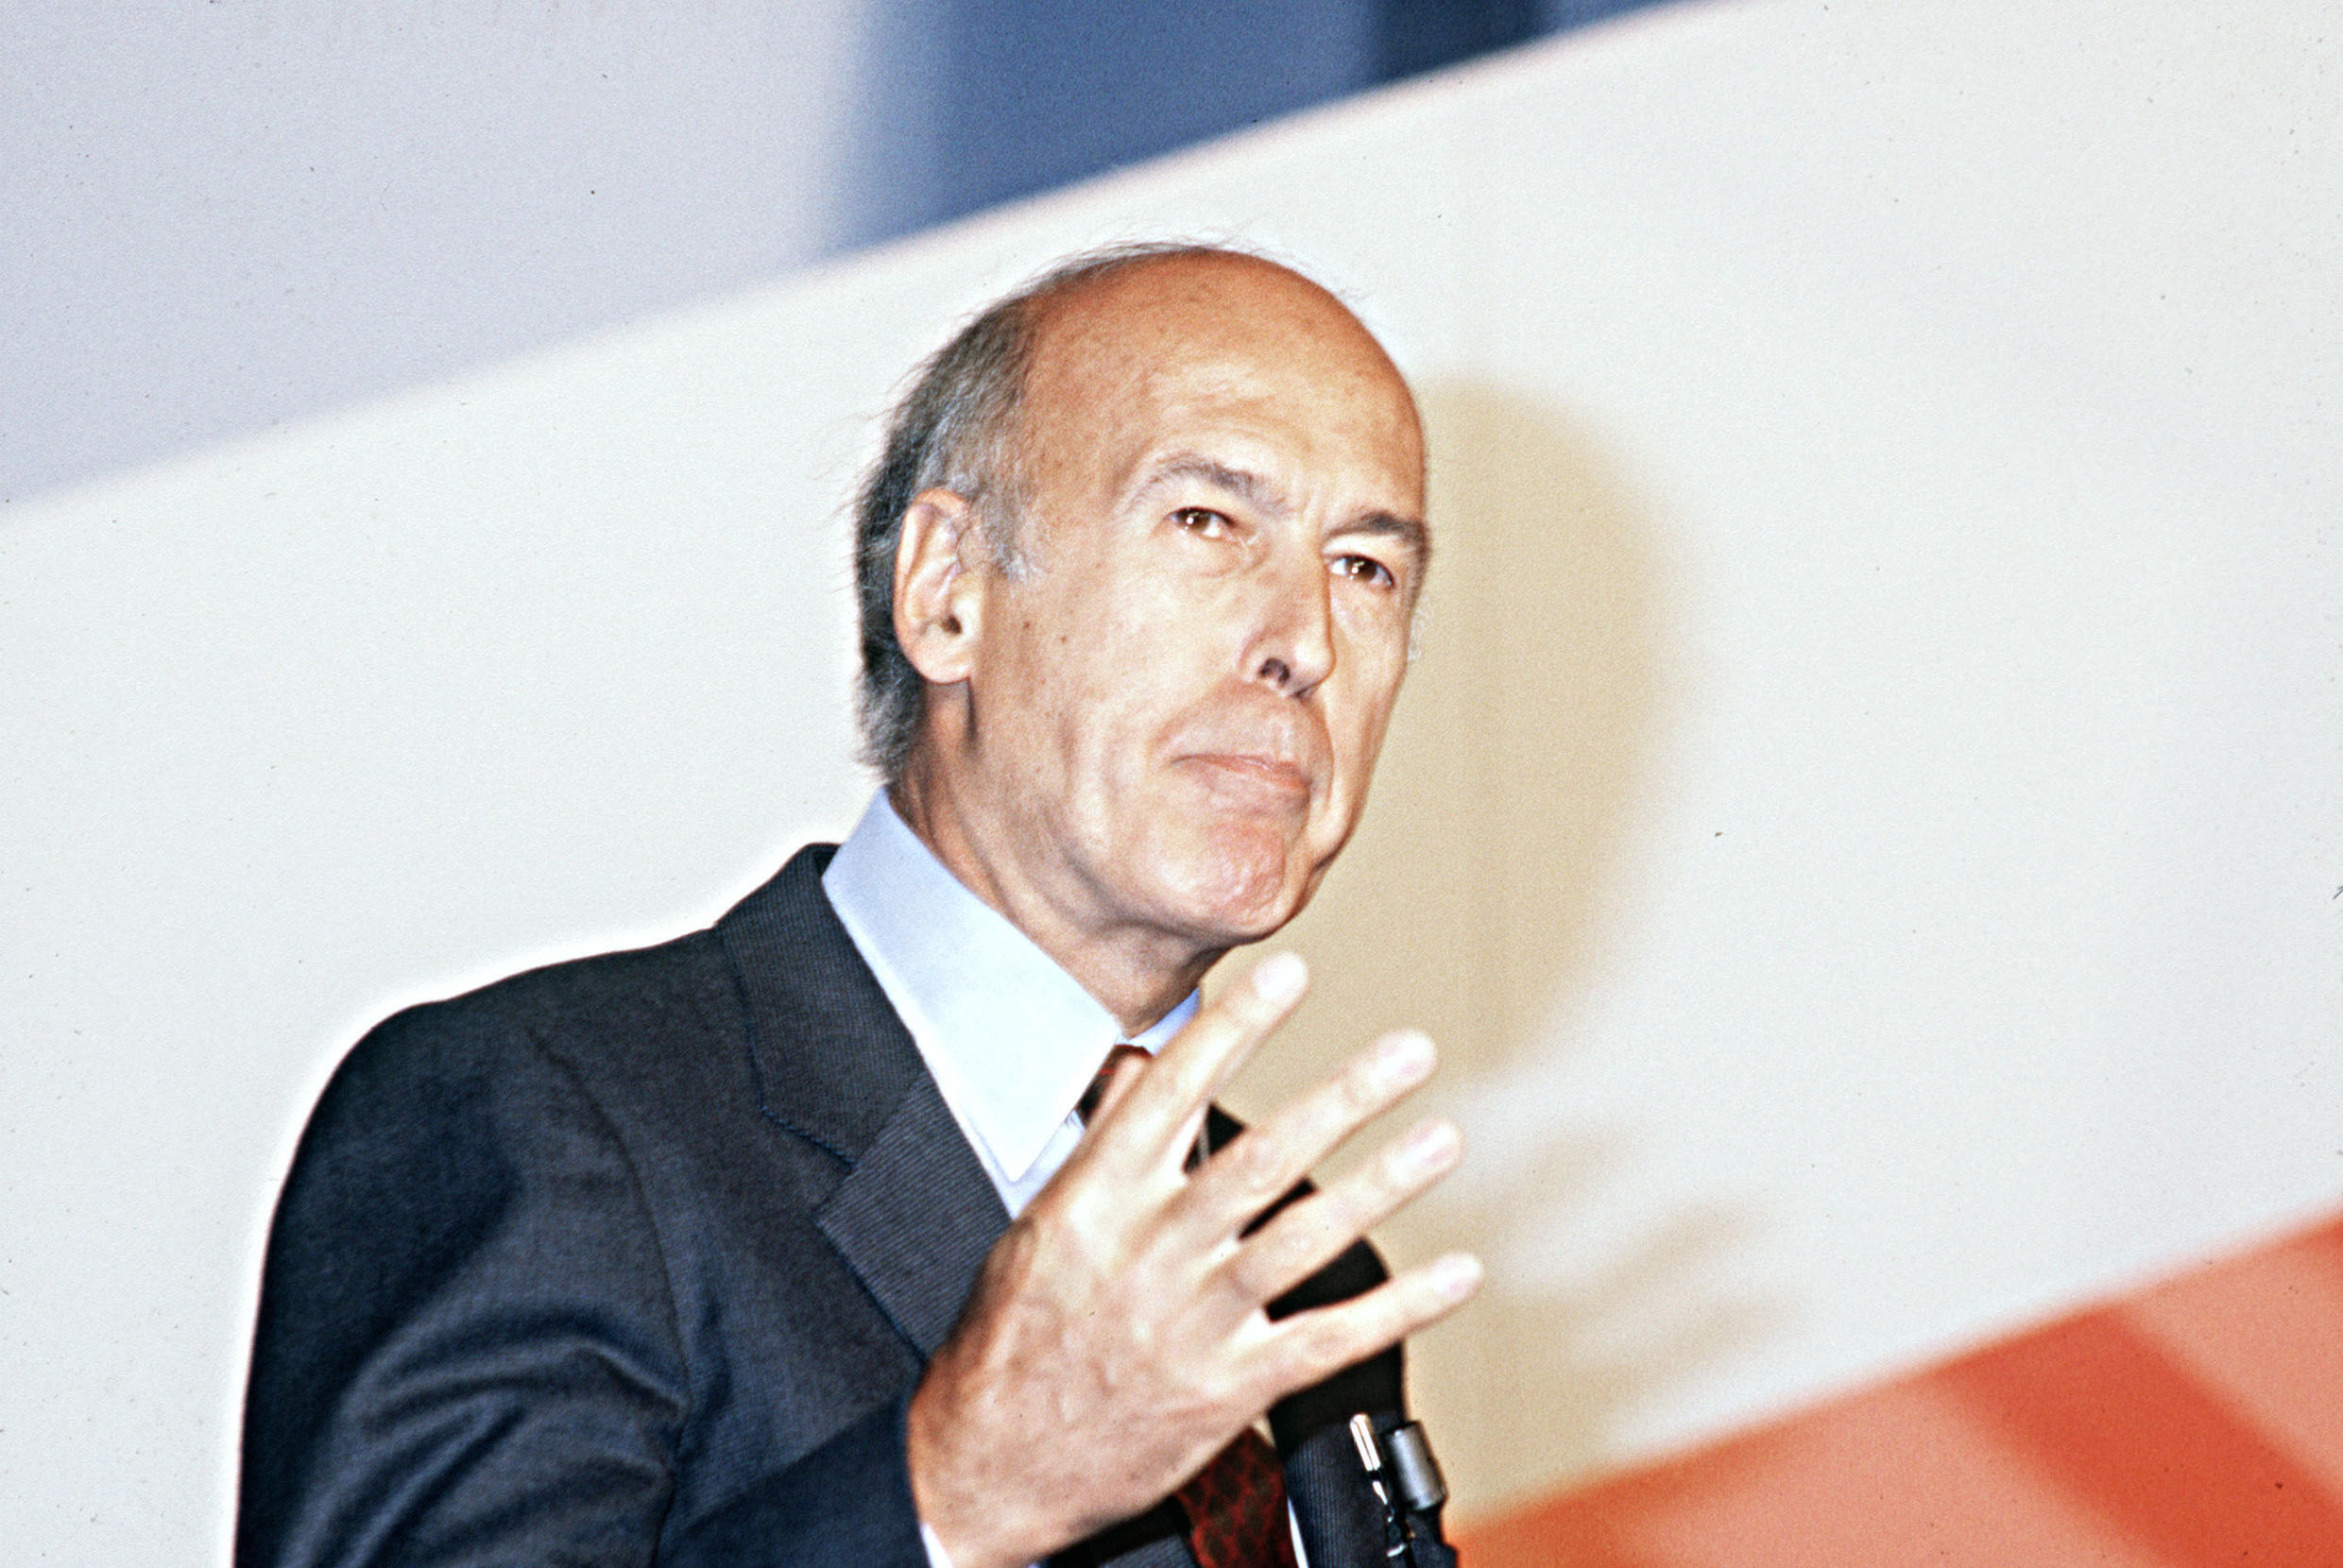 Former French President Valéry Giscard d'Estaing died on December 2, 2020 as a result of Covid-19.